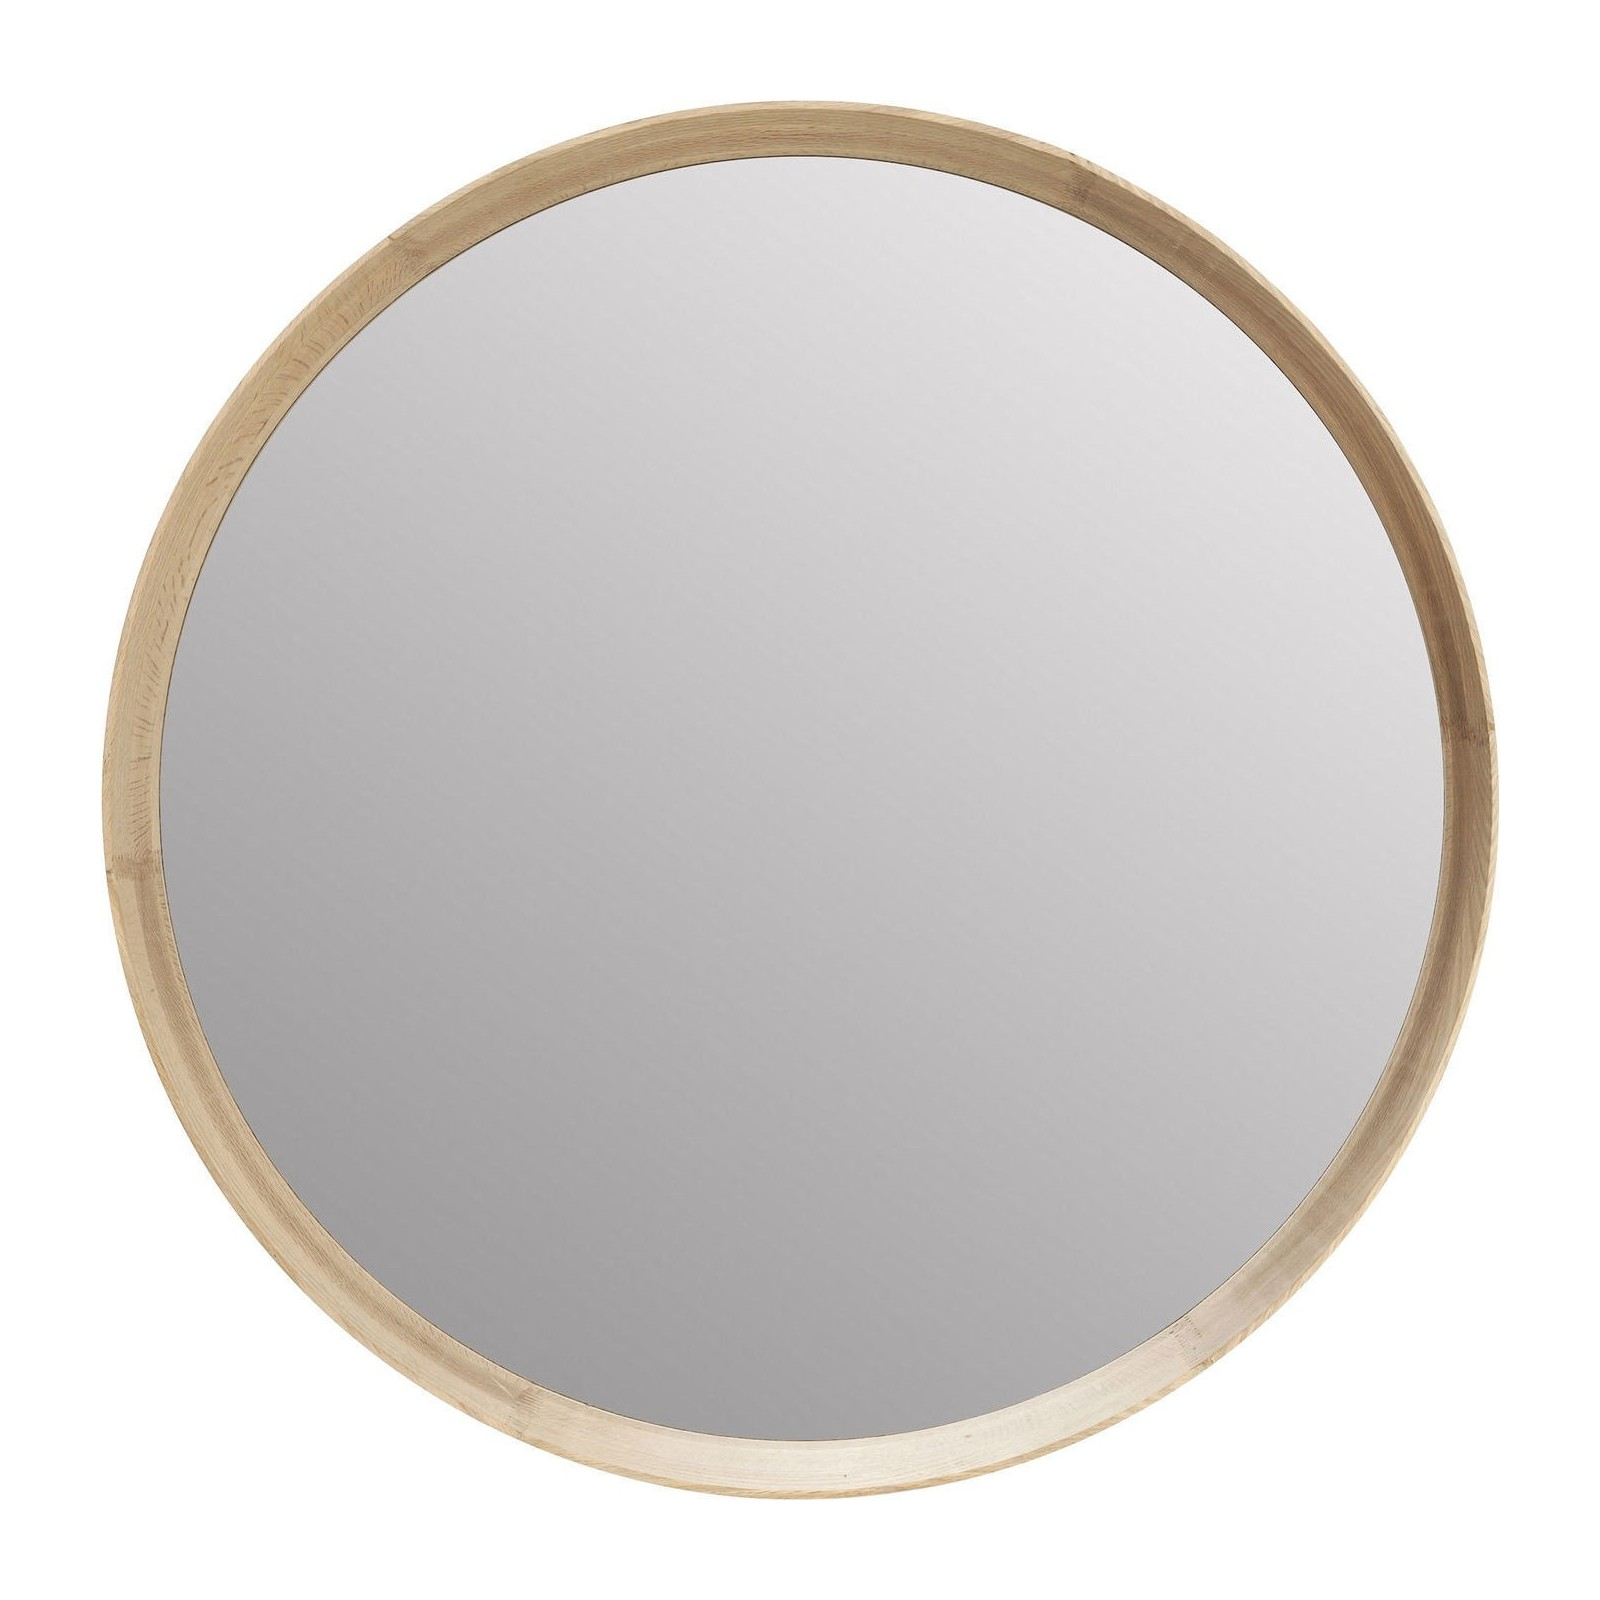 miroir rond ikea round mirrors ikea ireland dublin. Black Bedroom Furniture Sets. Home Design Ideas